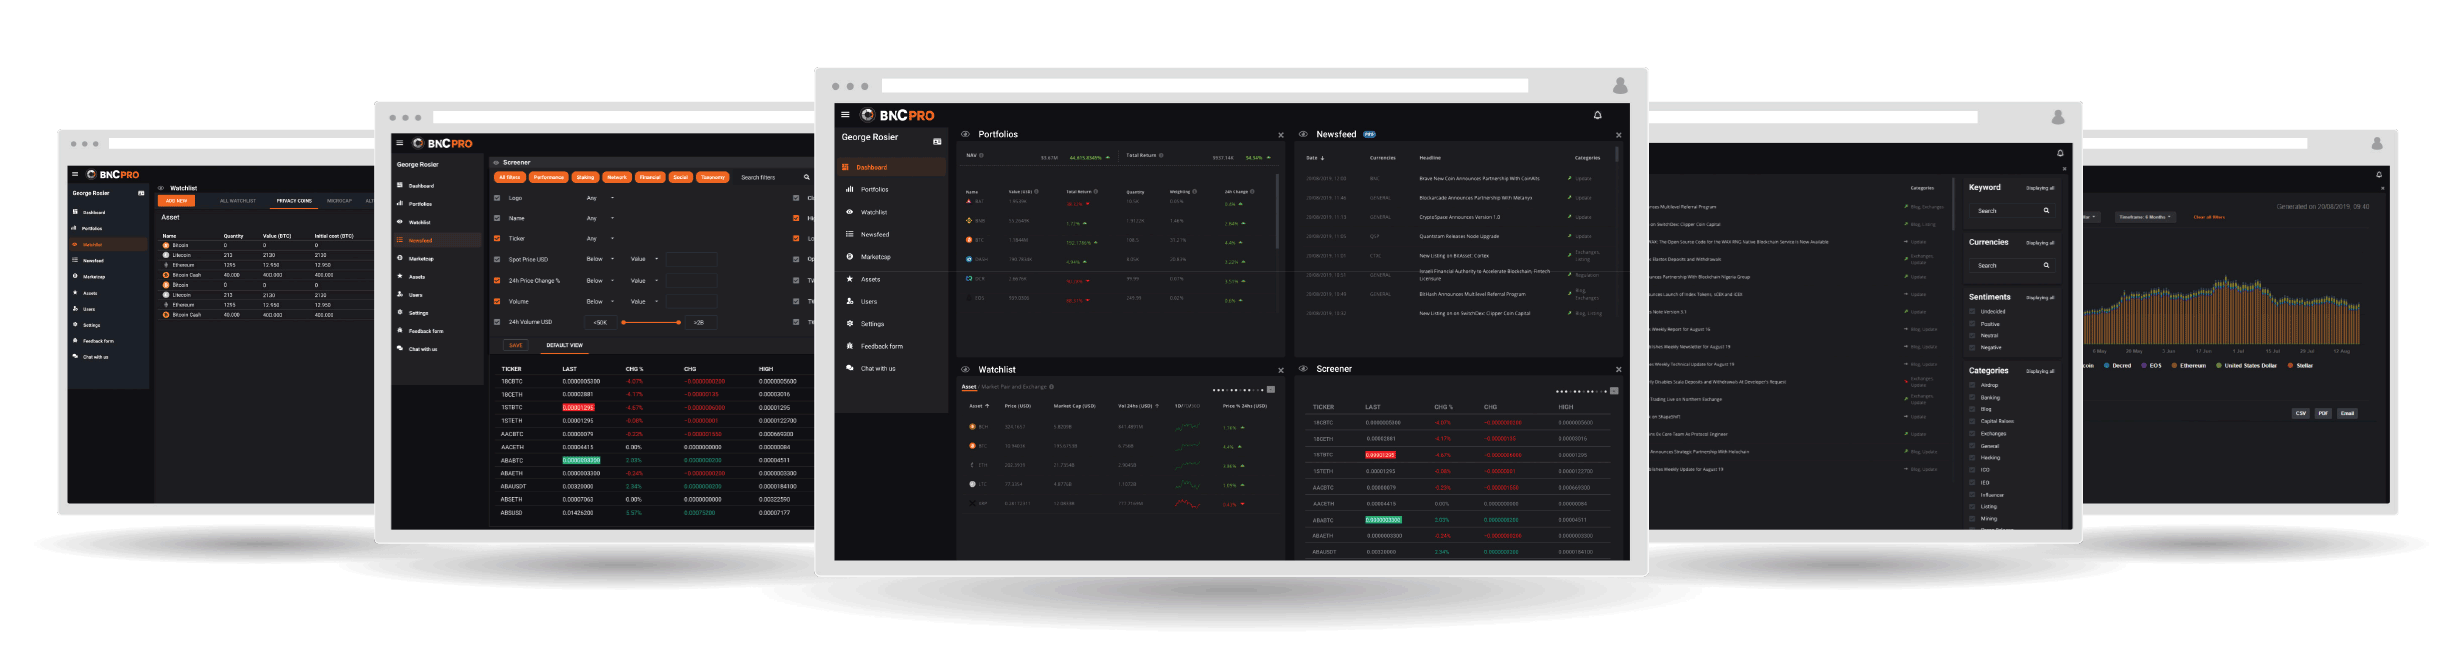 BNC Pro is an all-in-one Digital Wealth Management platform